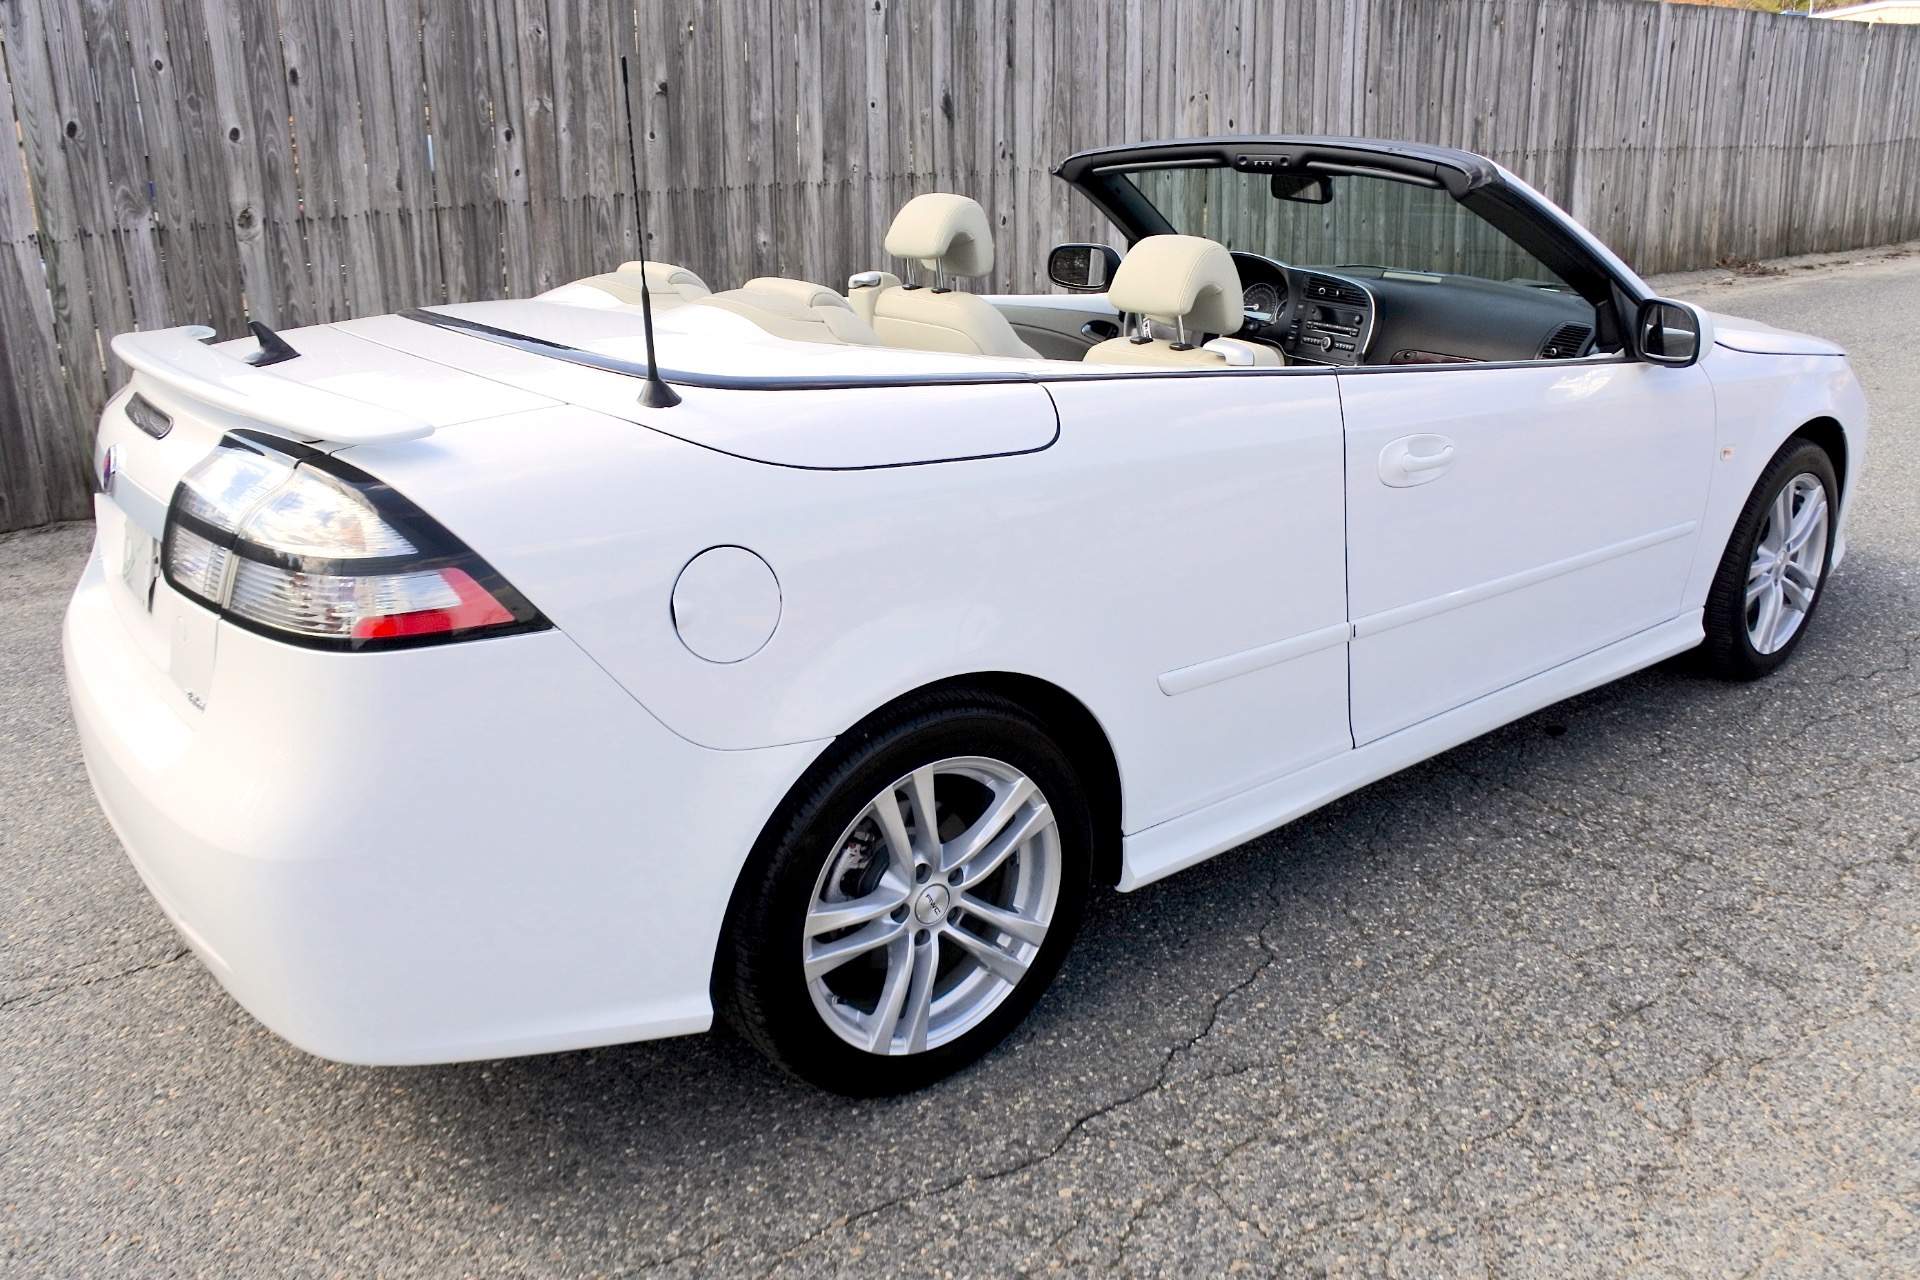 Used 2011 Saab 9-3 2dr Conv Auto FWD Used 2011 Saab 9-3 2dr Conv Auto FWD for sale  at Metro West Motorcars LLC in Shrewsbury MA 5